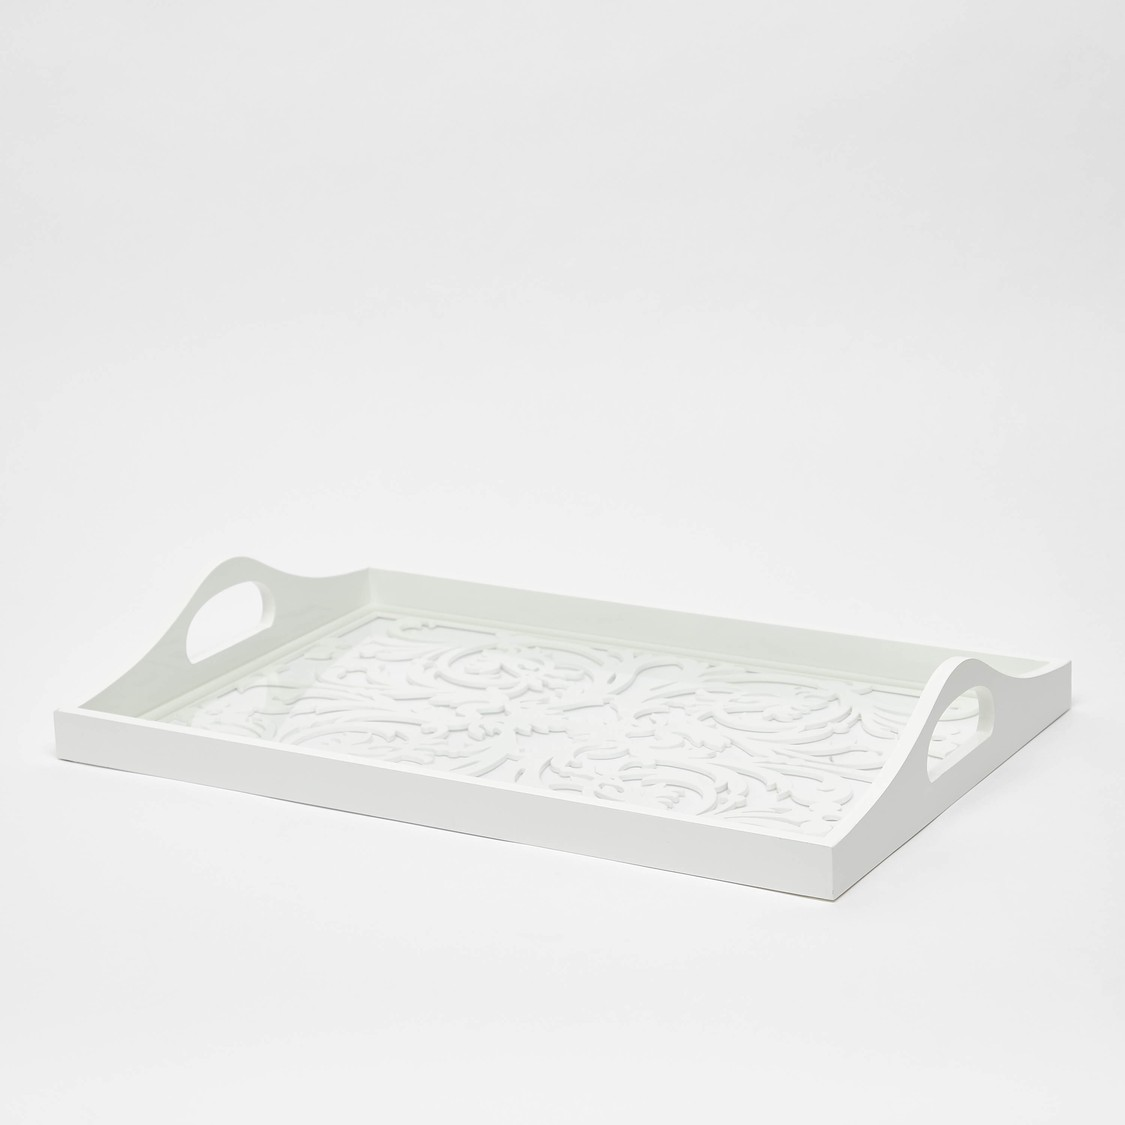 Serving Tray with Cutout Handles - 45x30 cms